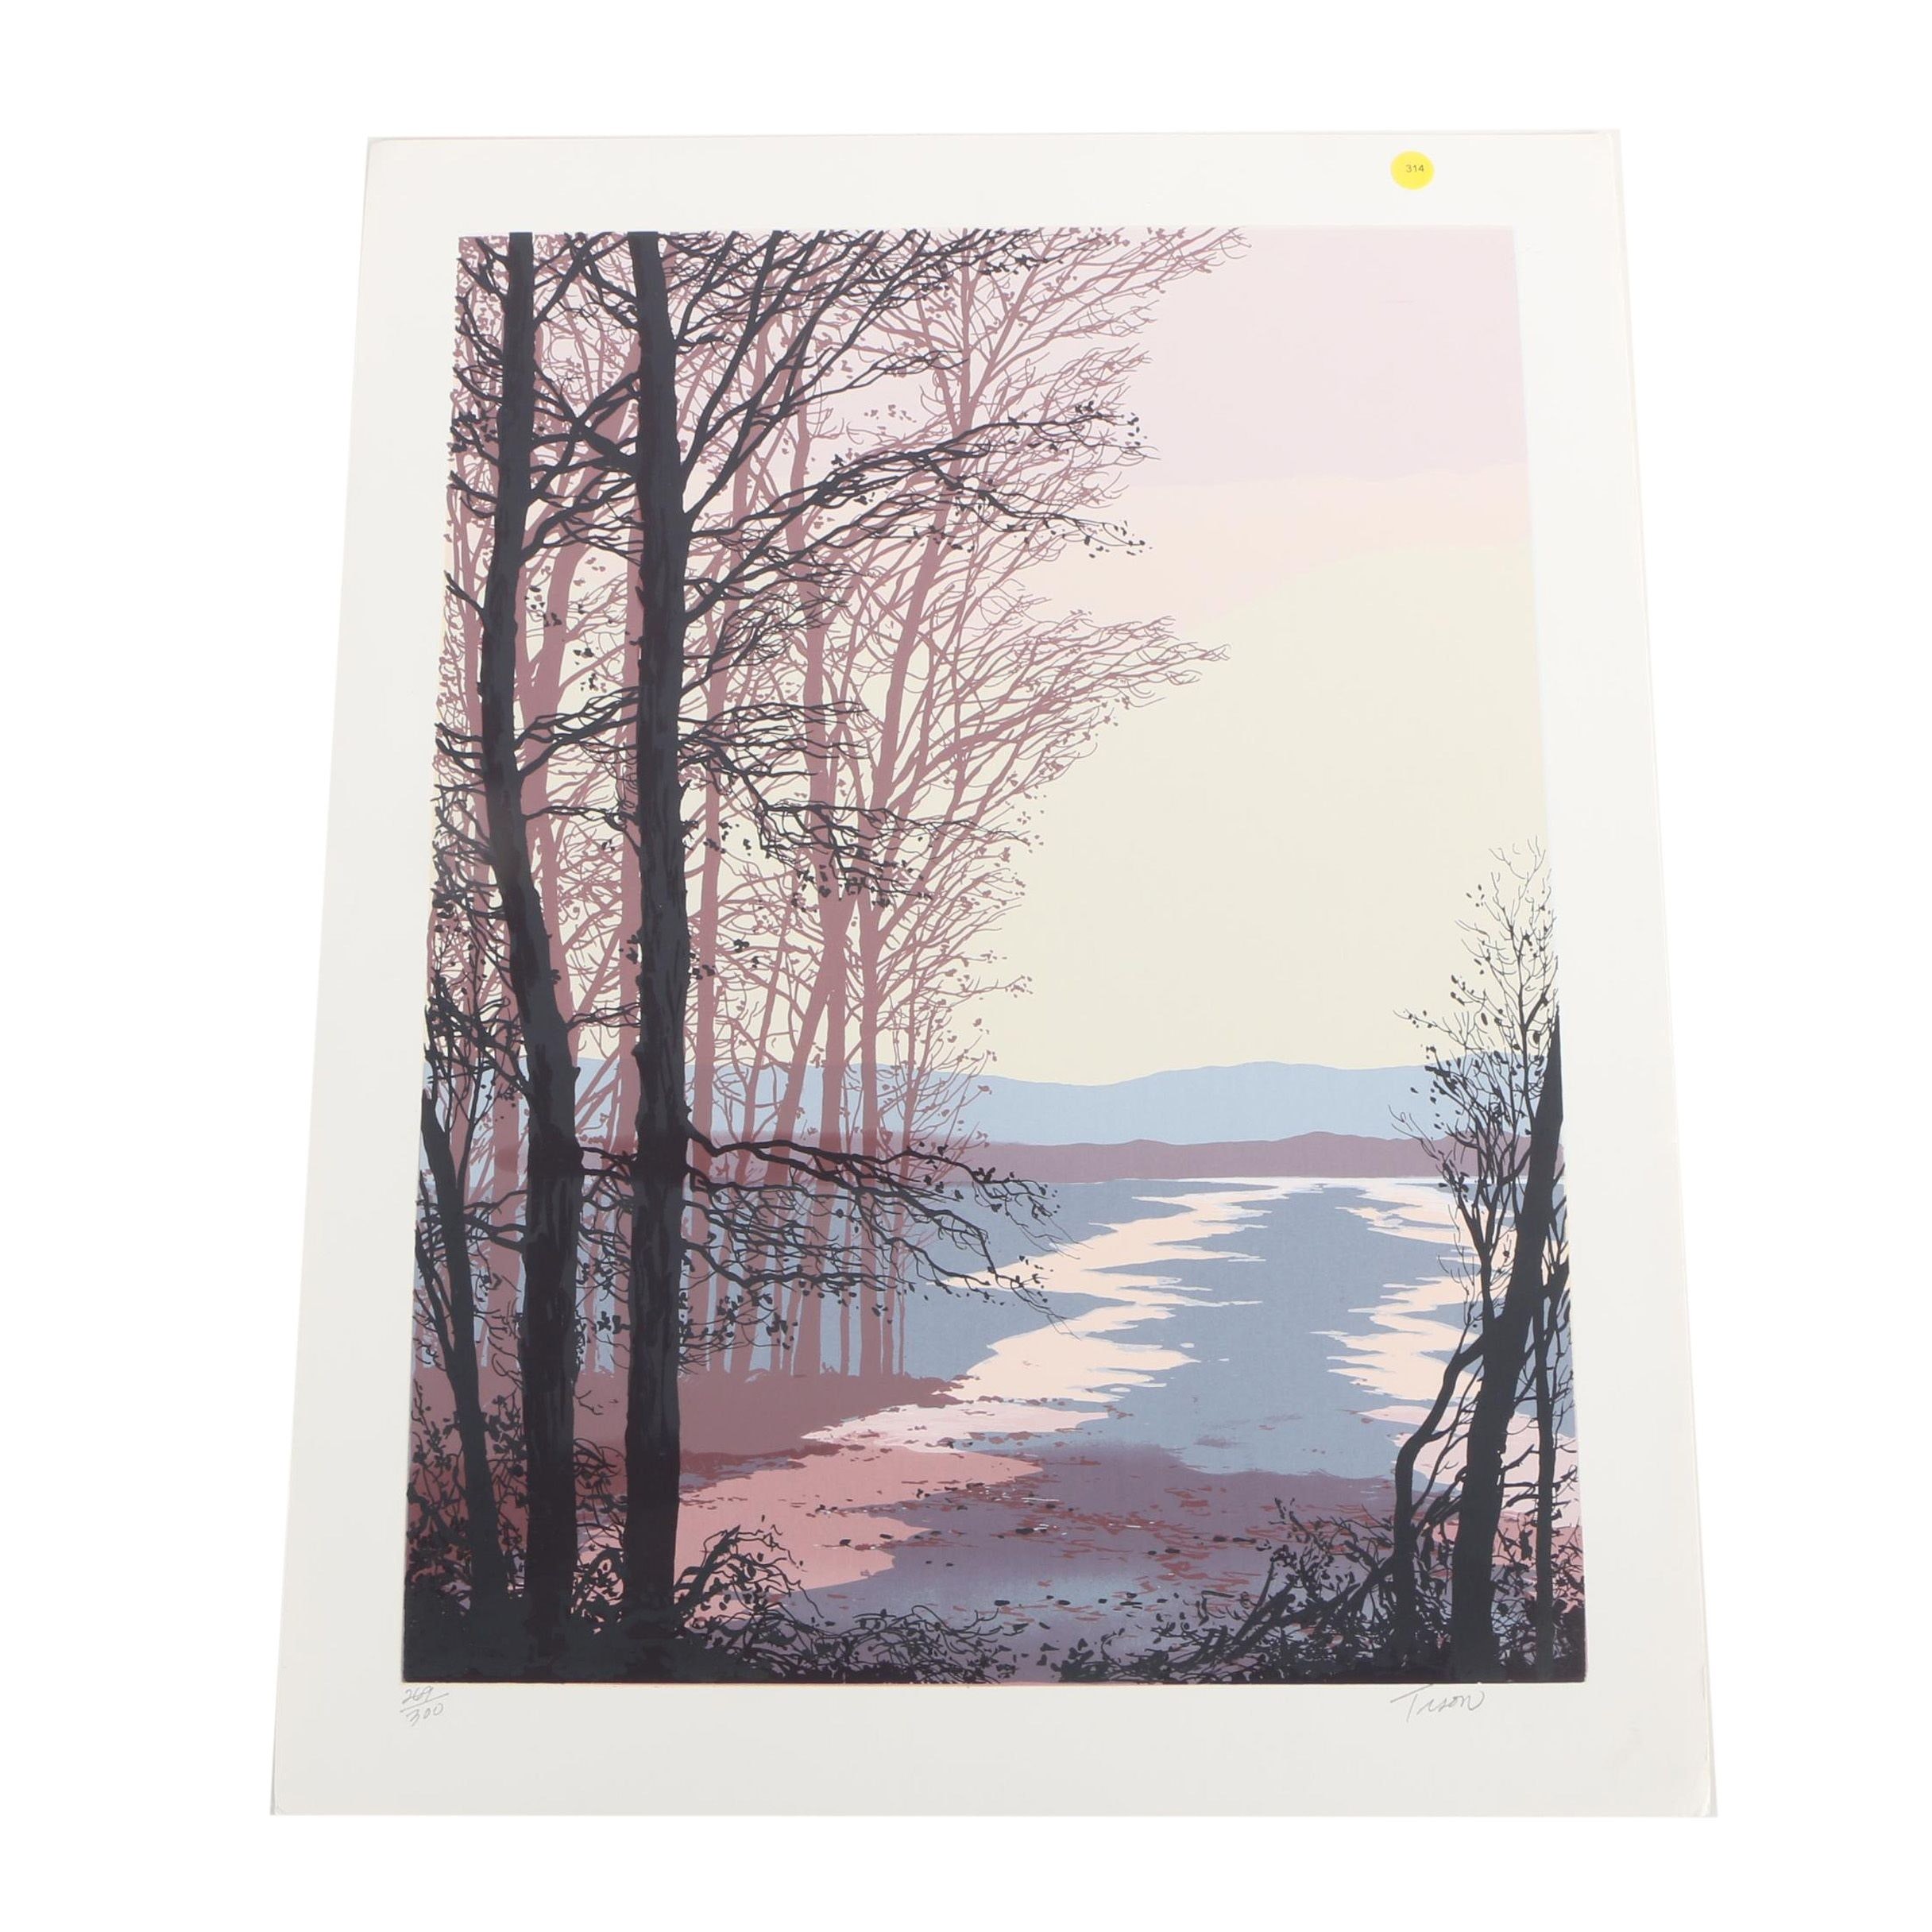 Tison Limited Edition Serigraph of Nature